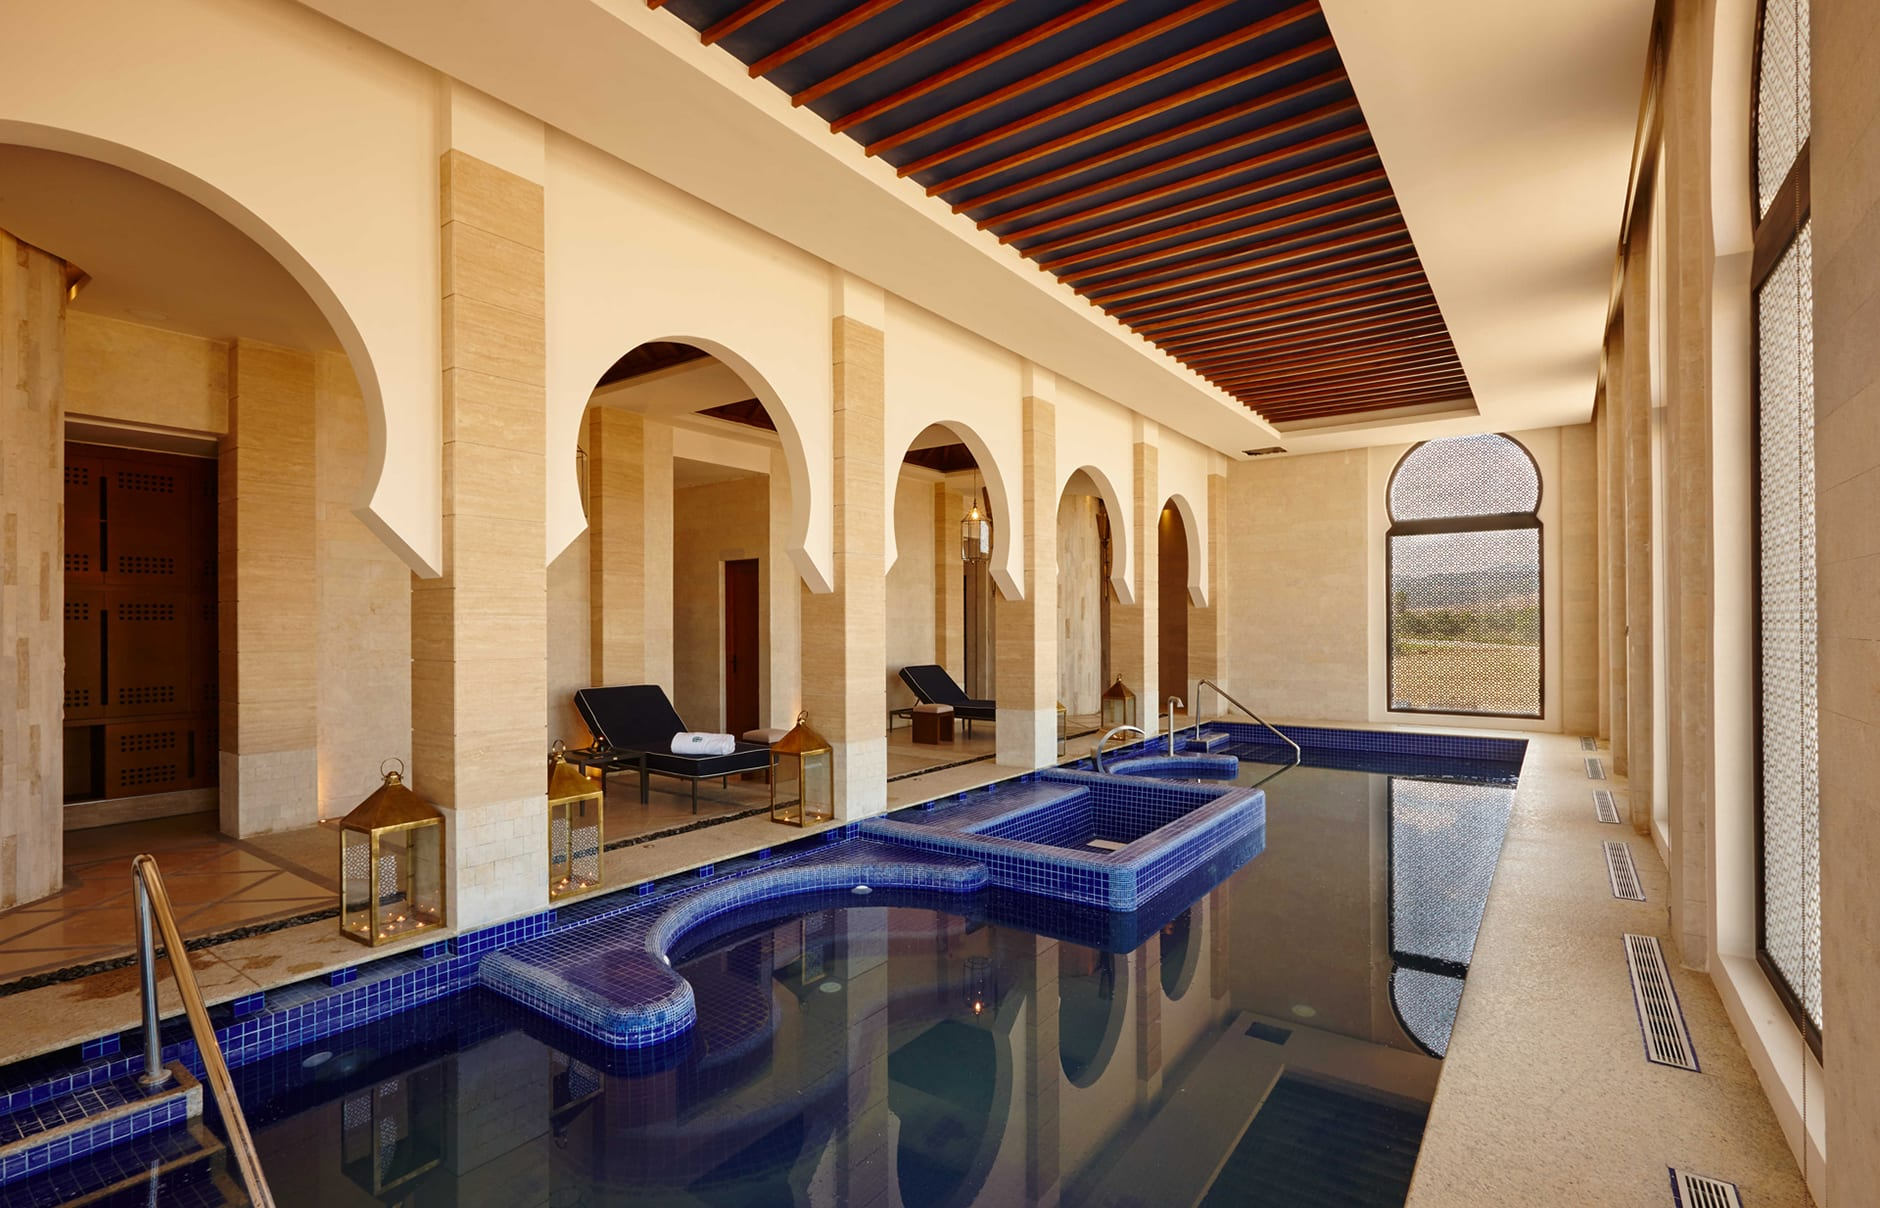 Banyan Tree Tamouda Bay, Morocco. Luxury Hotel Review by TravelPlusStyle. Photo © Banyan Tree Hotels & Resorts